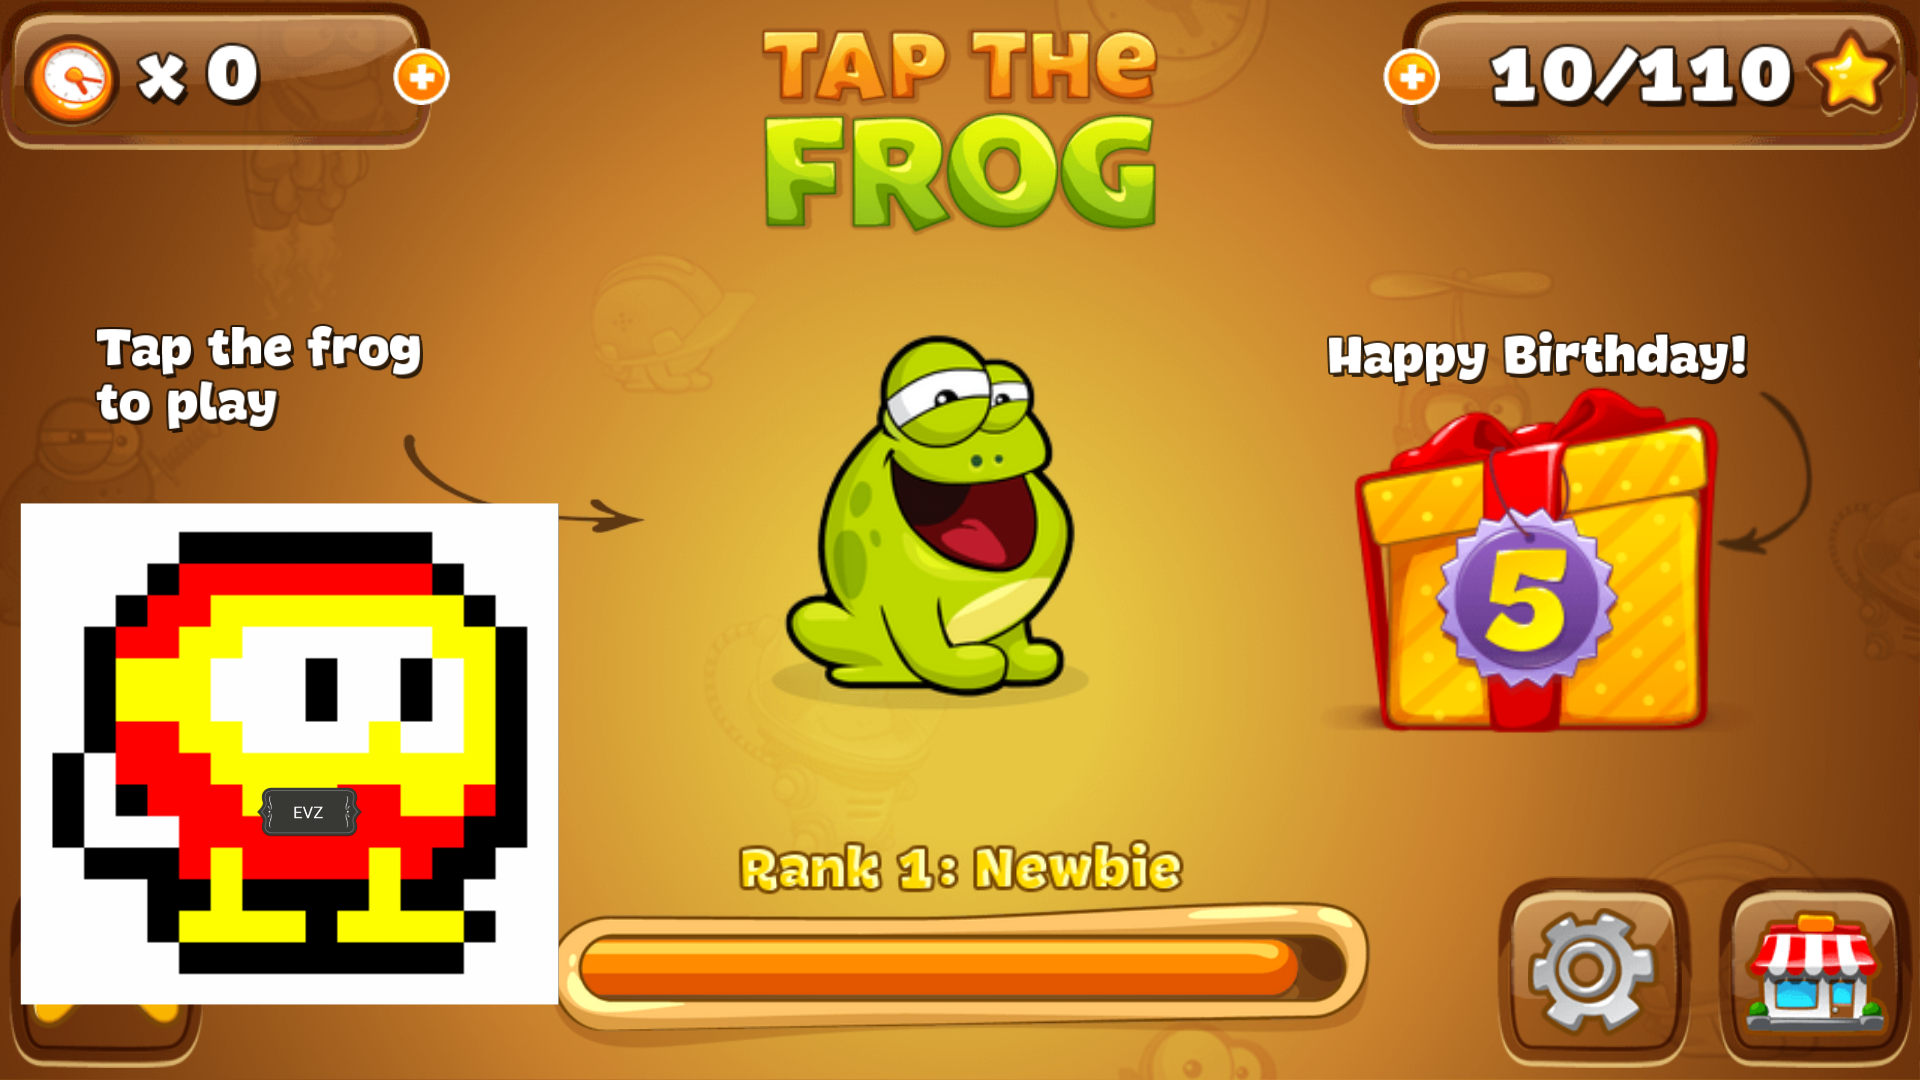 Tap The Frog 131 points